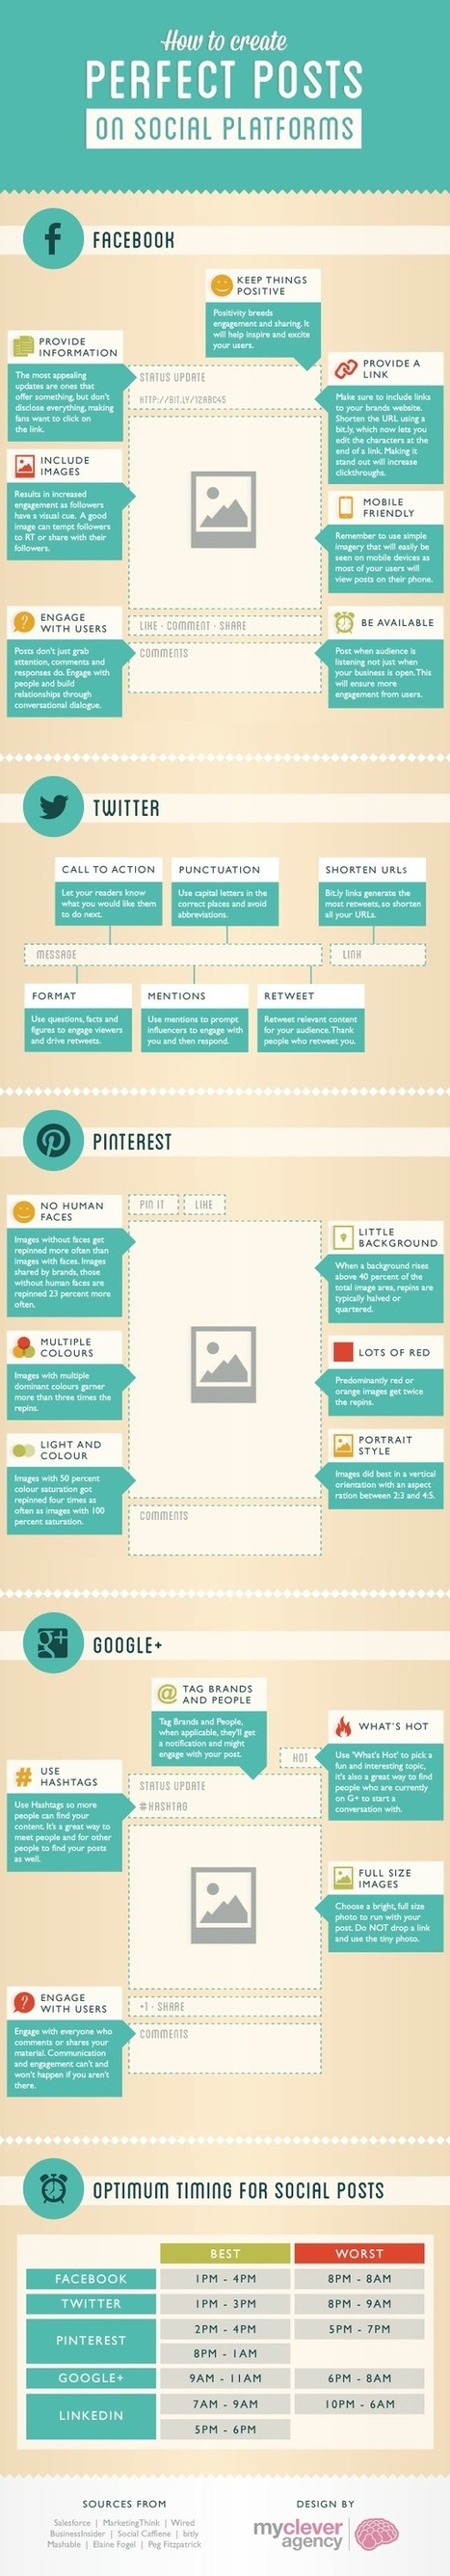 How to Create the Perfect Post on Social Media [INFOGRAPHIC] | Internet Marketing | Scoop.it